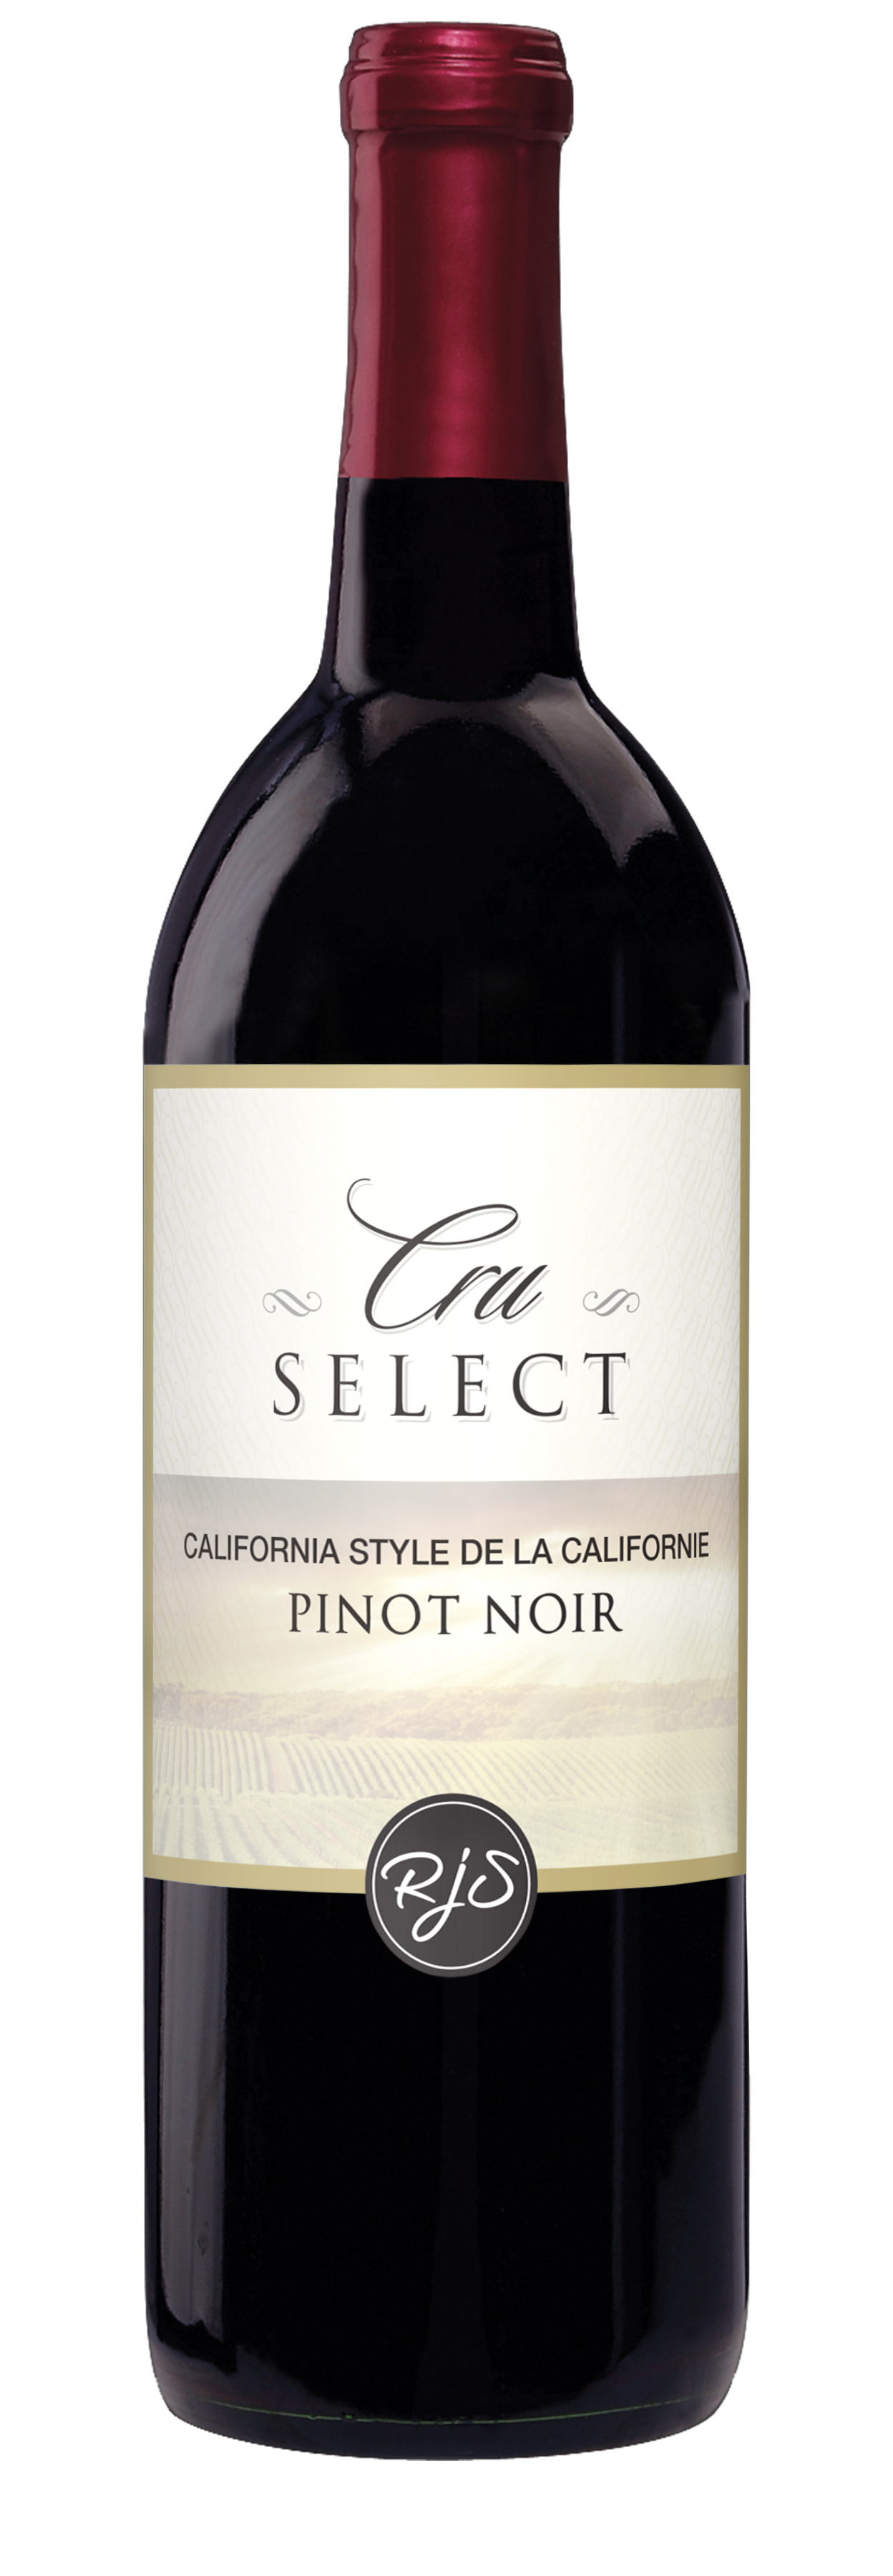 https://0901.nccdn.net/4_2/000/000/008/486/BottleMockUp_Select_CaliPinotNoir.png